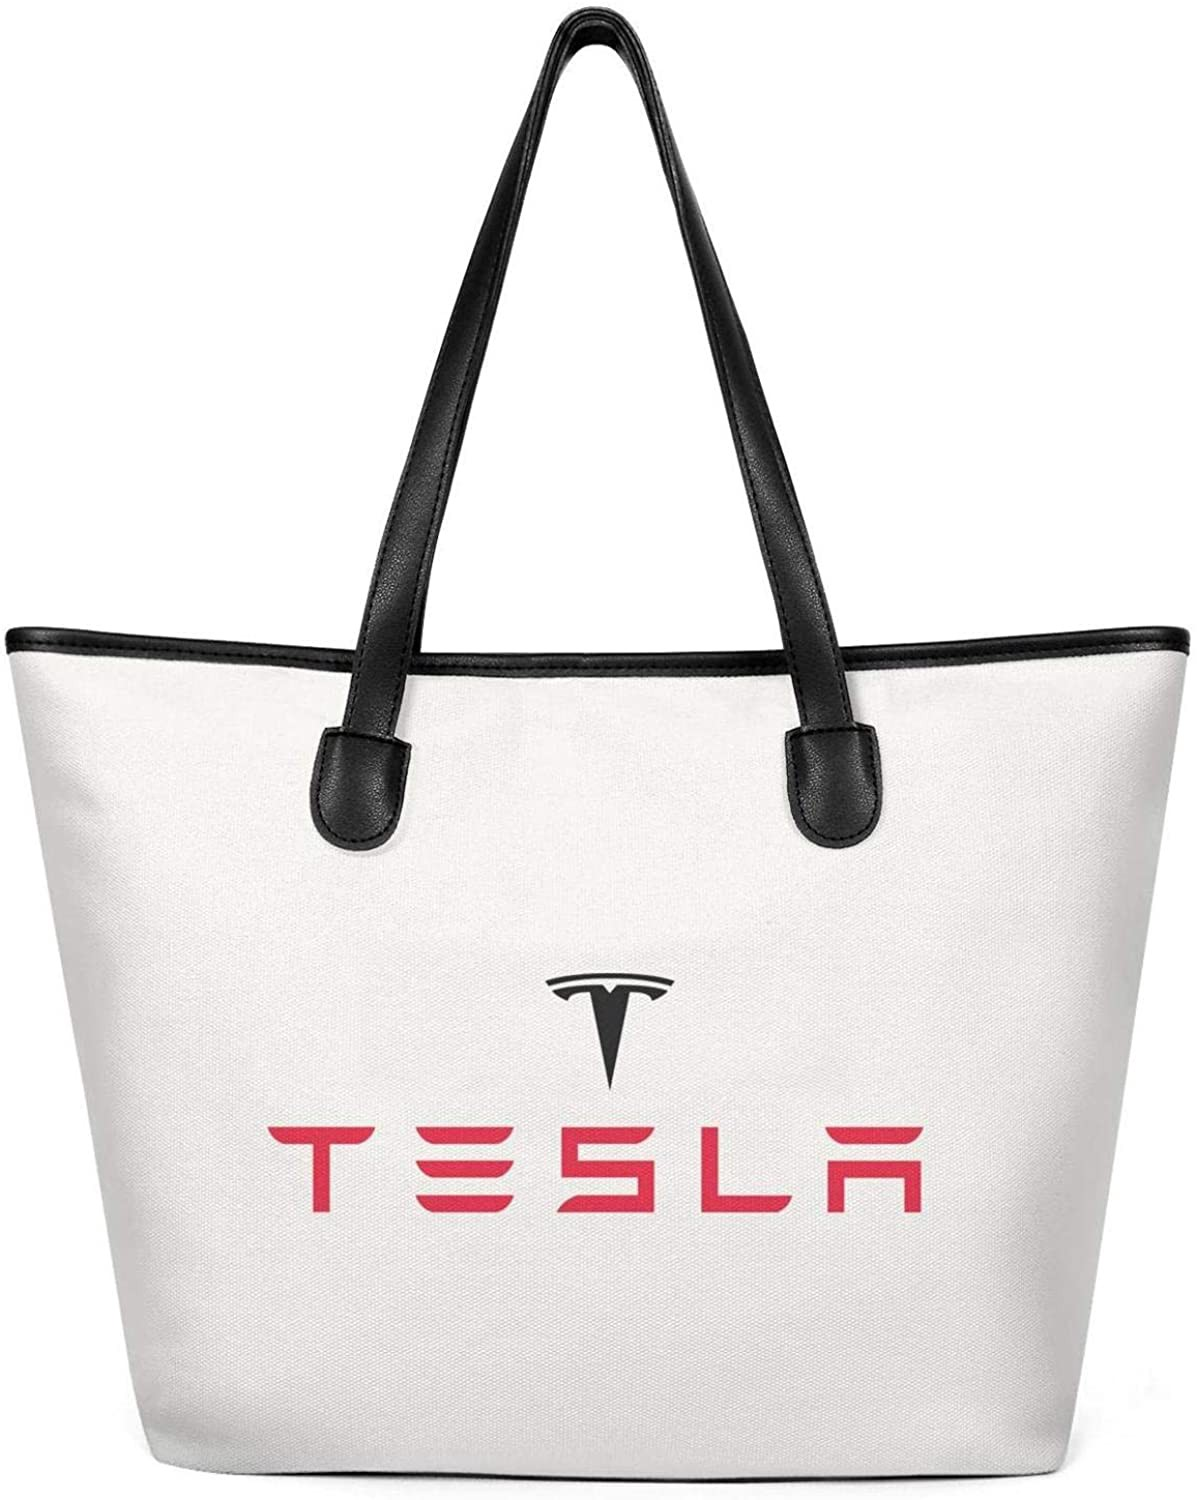 Is TSLA a tech stock or a fashion product?